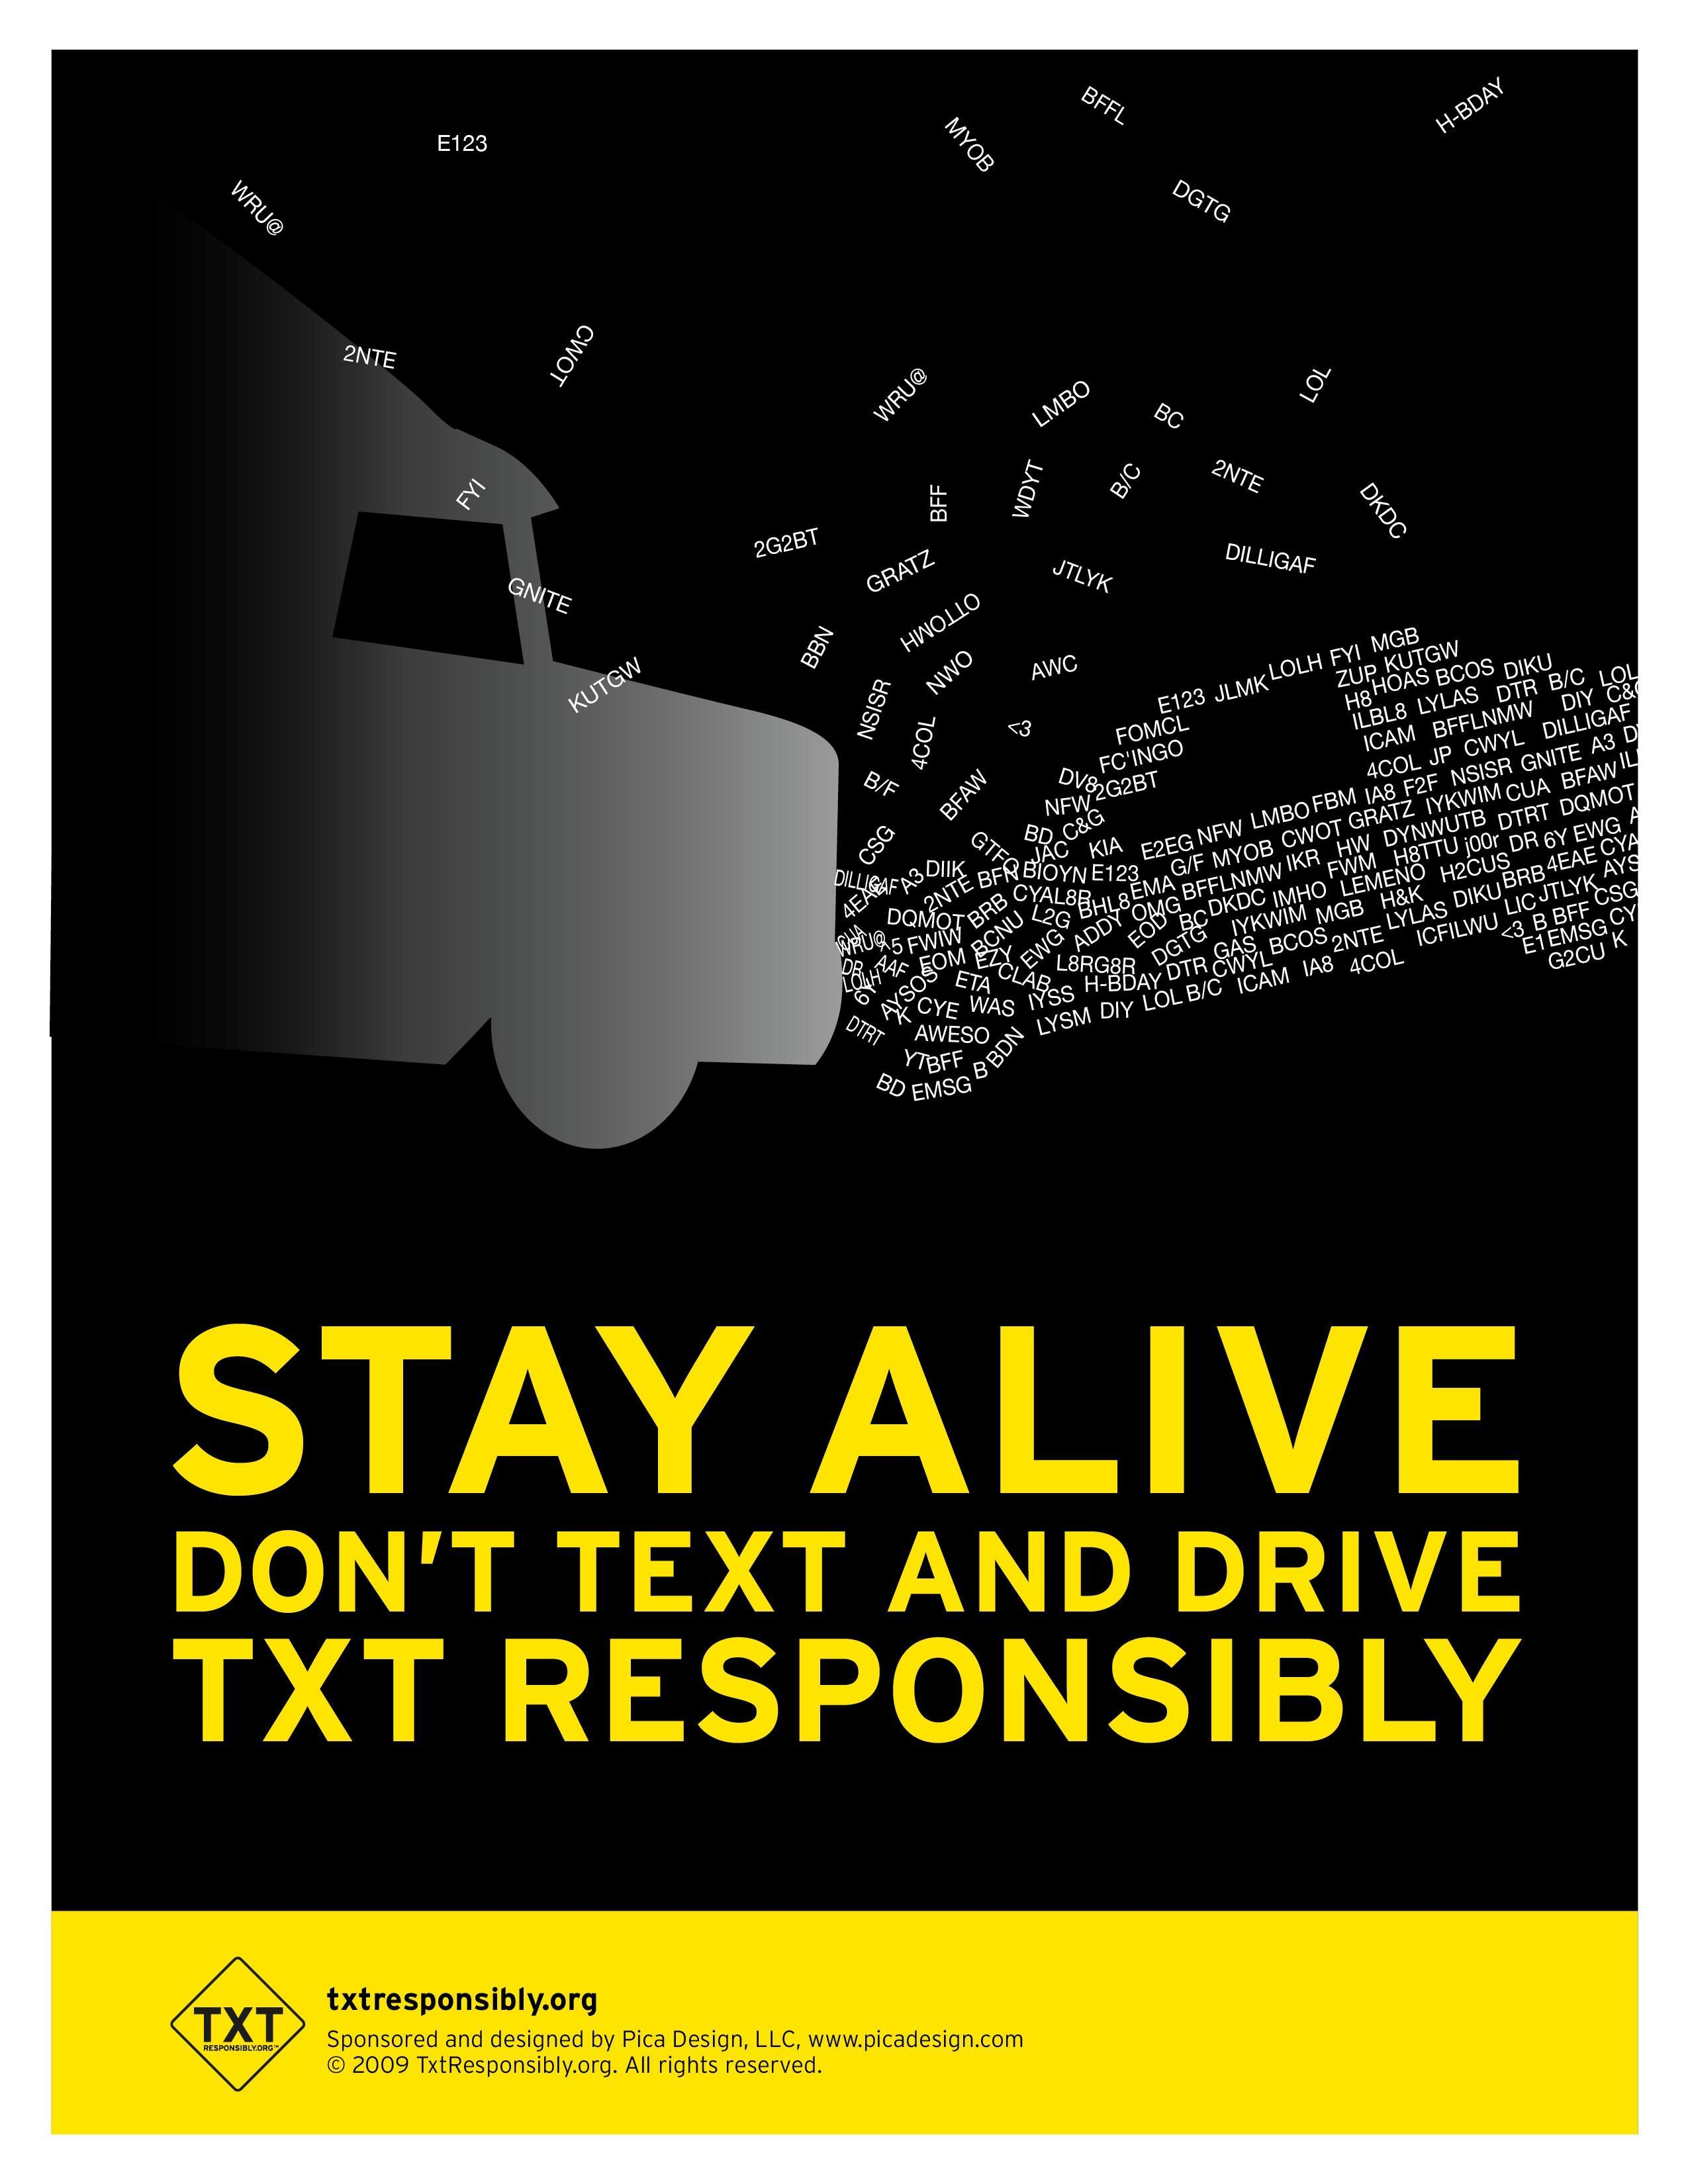 Arrive safe. You are loved. Don't text and drive. It can wait!